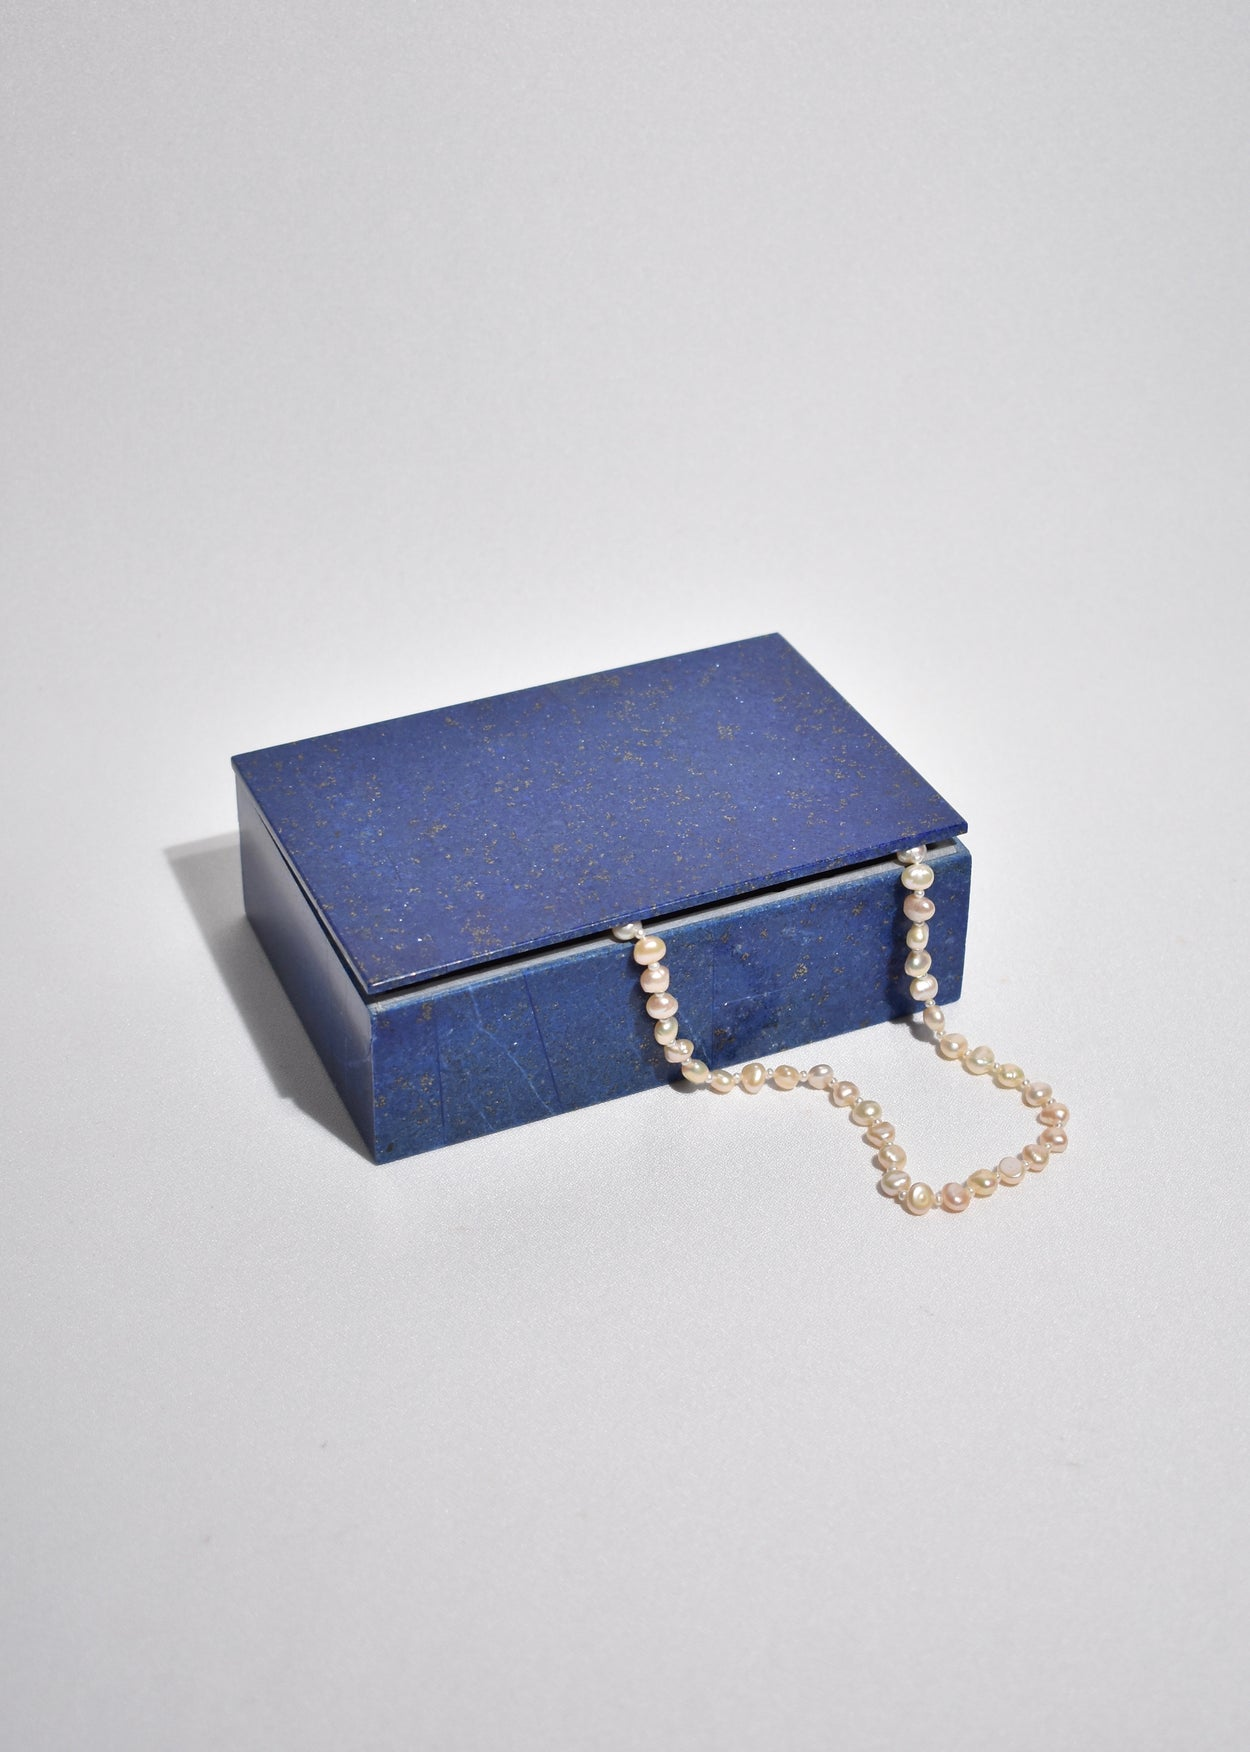 Blue Lapis Jewelry Box